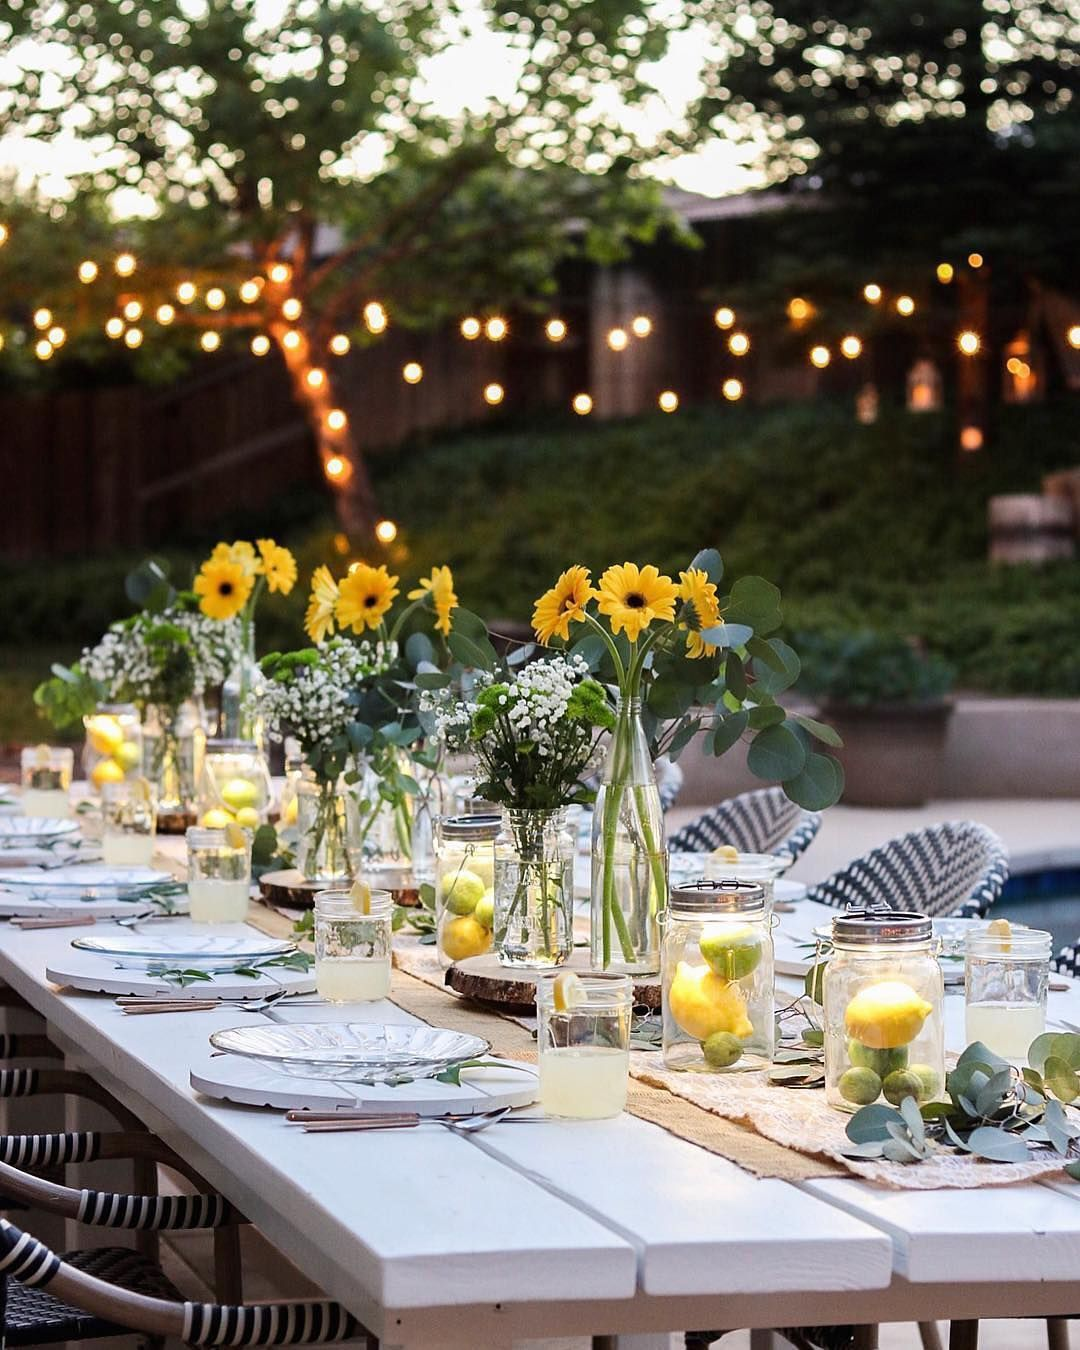 The best part of summer? Tablescapes like this one